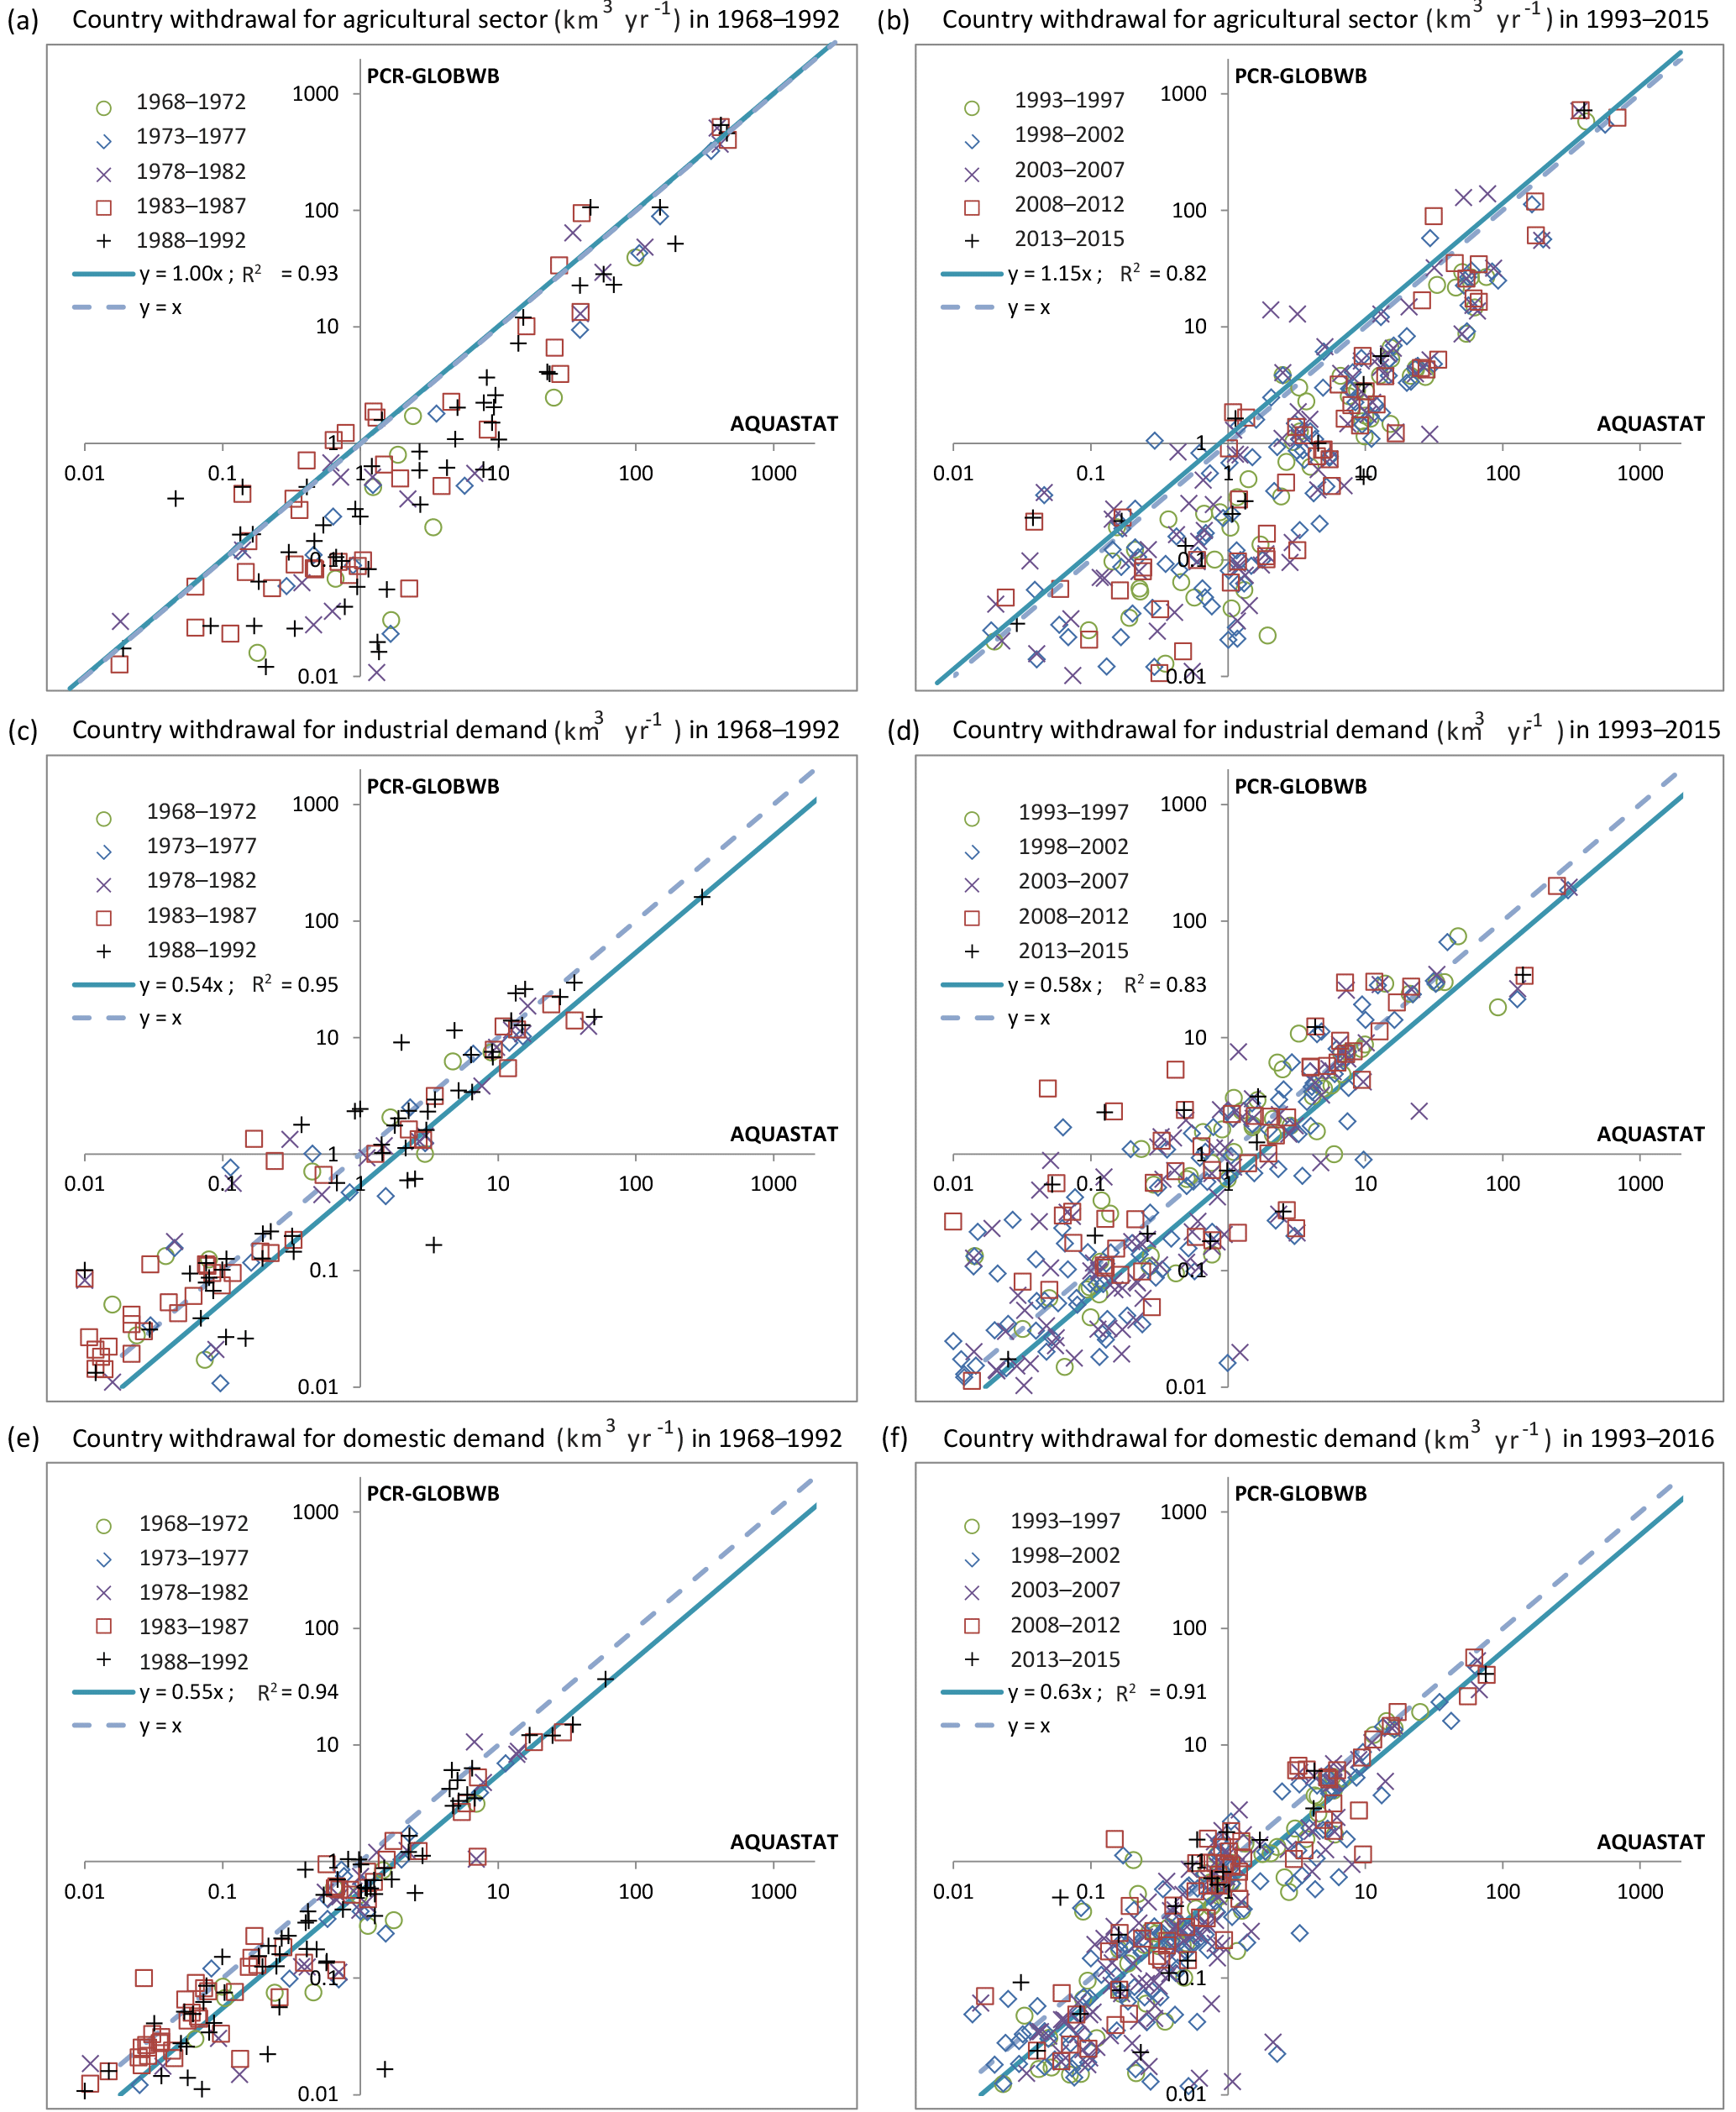 GMD - PCR-GLOBWB 2: a 5 arcmin global hydrological and water